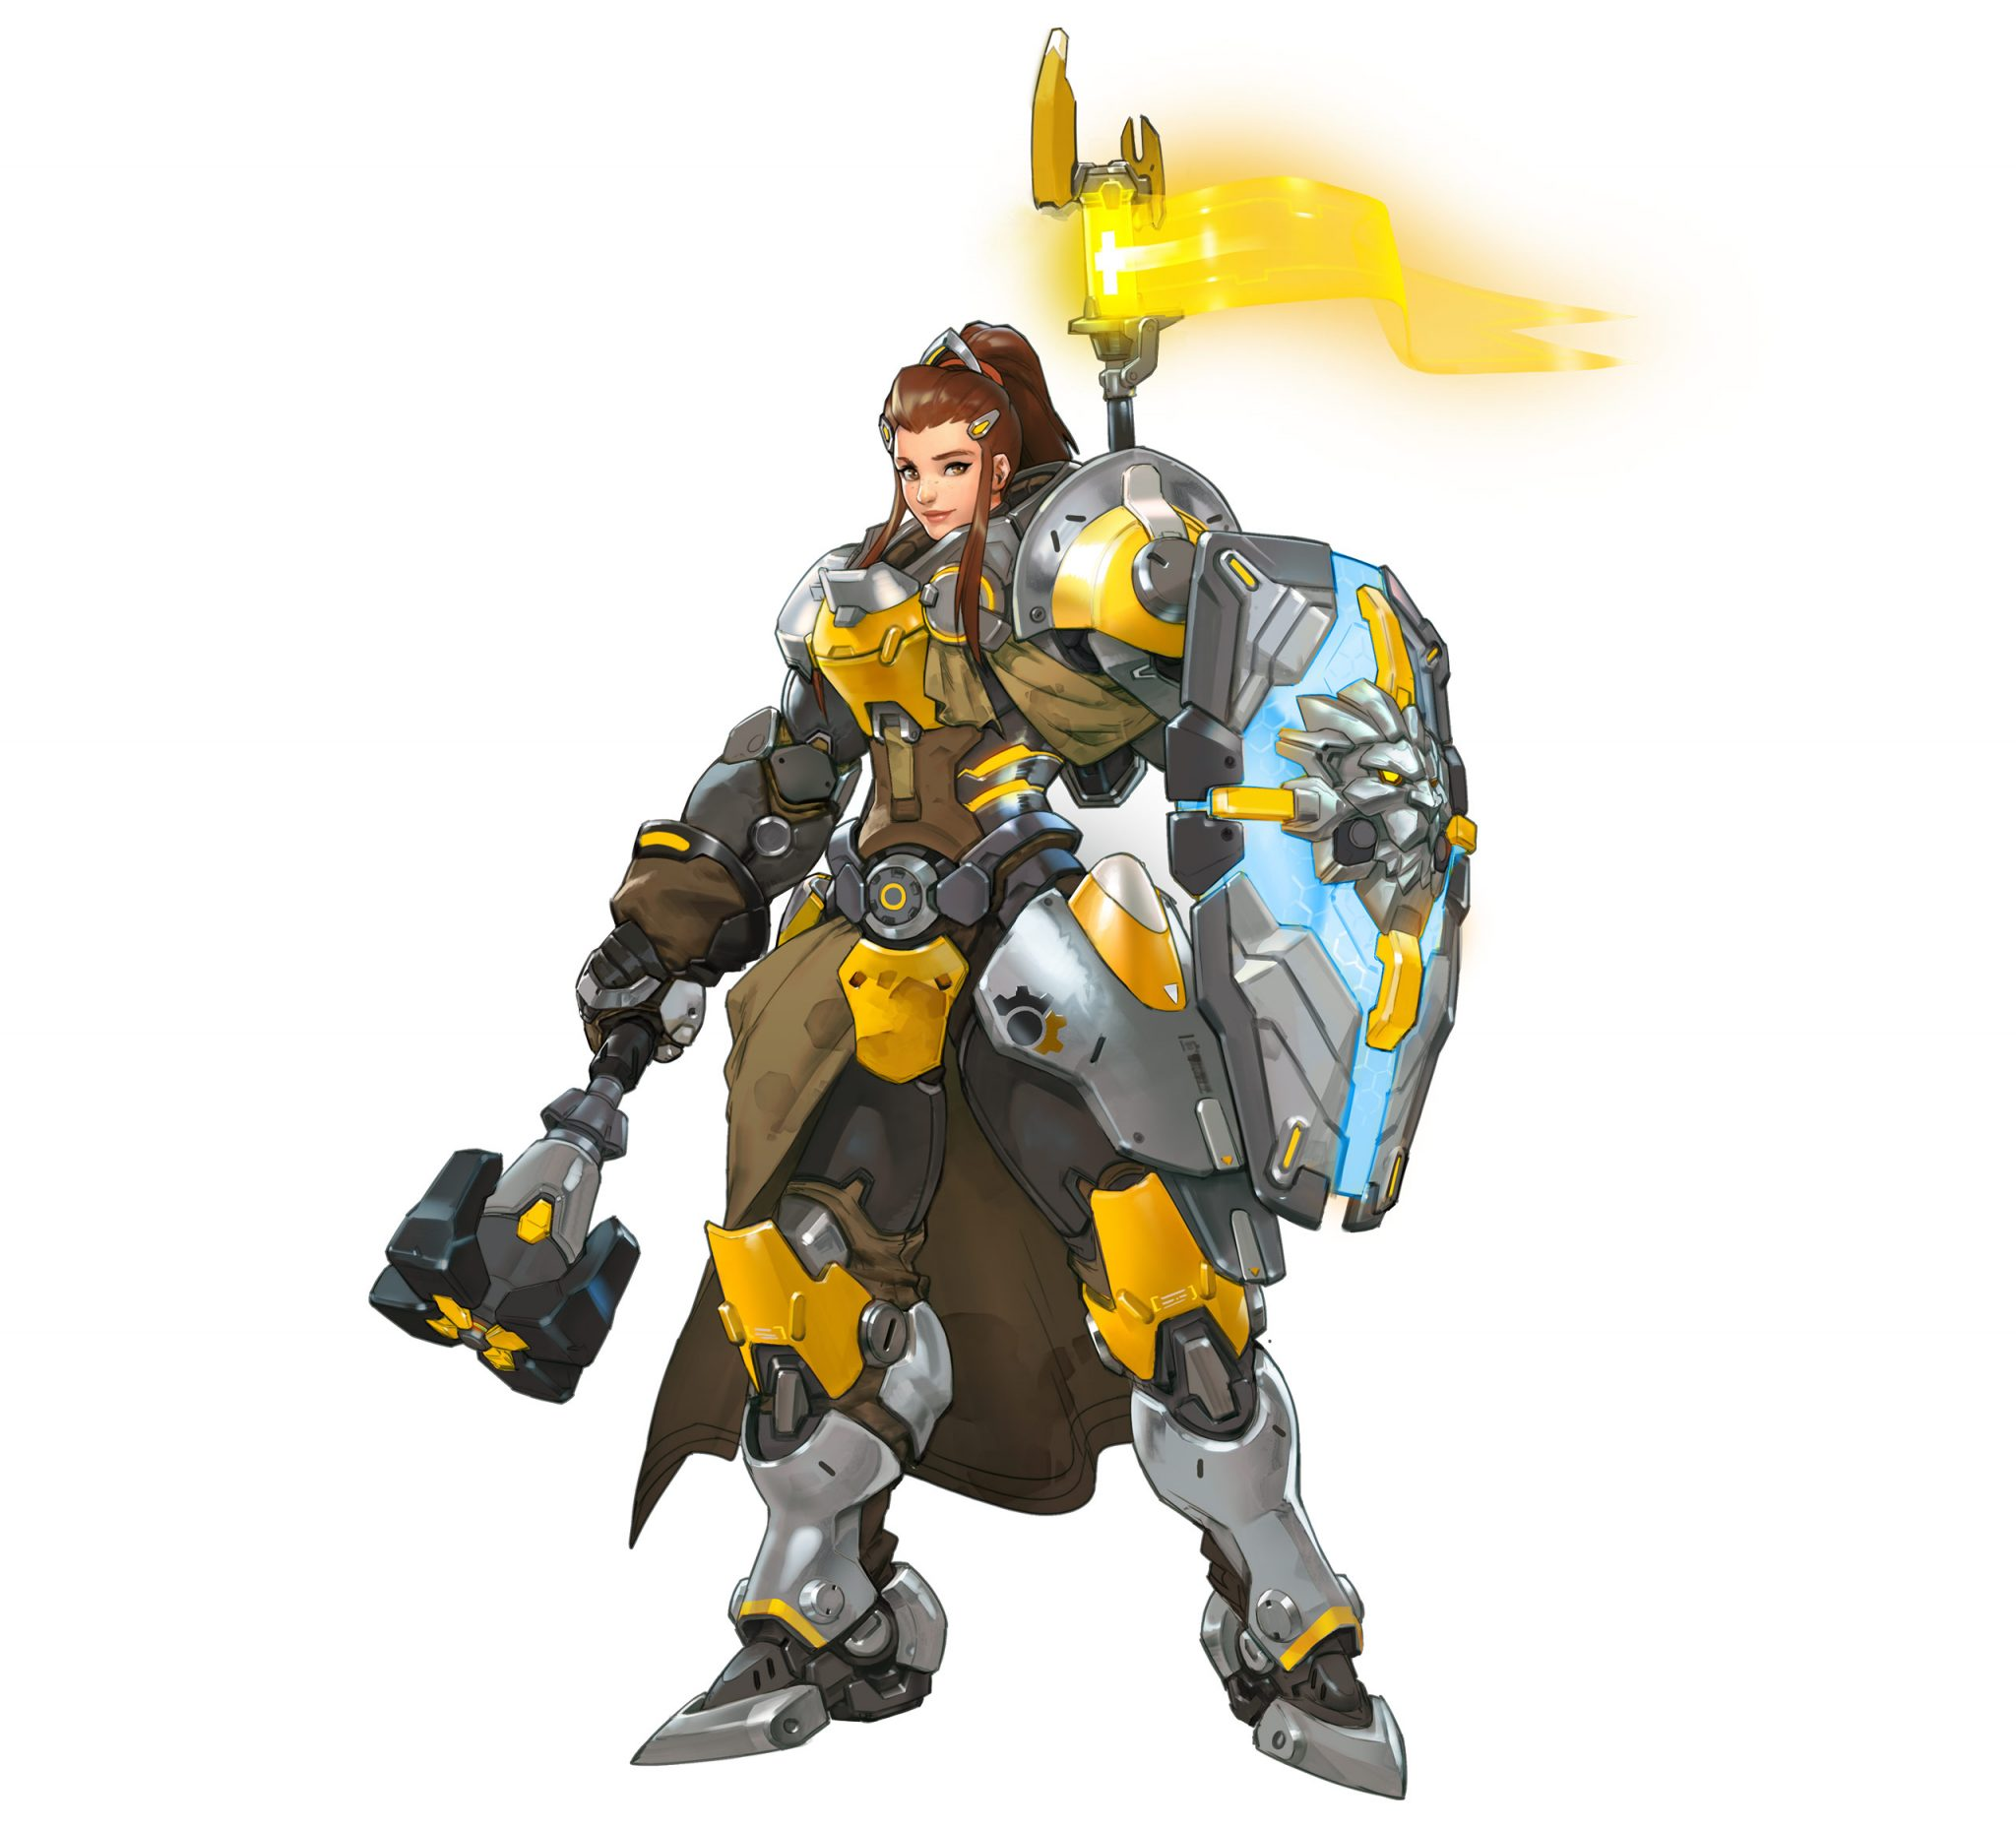 Previews: Brigitte is the Tank-Healer Hybrid I've Been Looking For